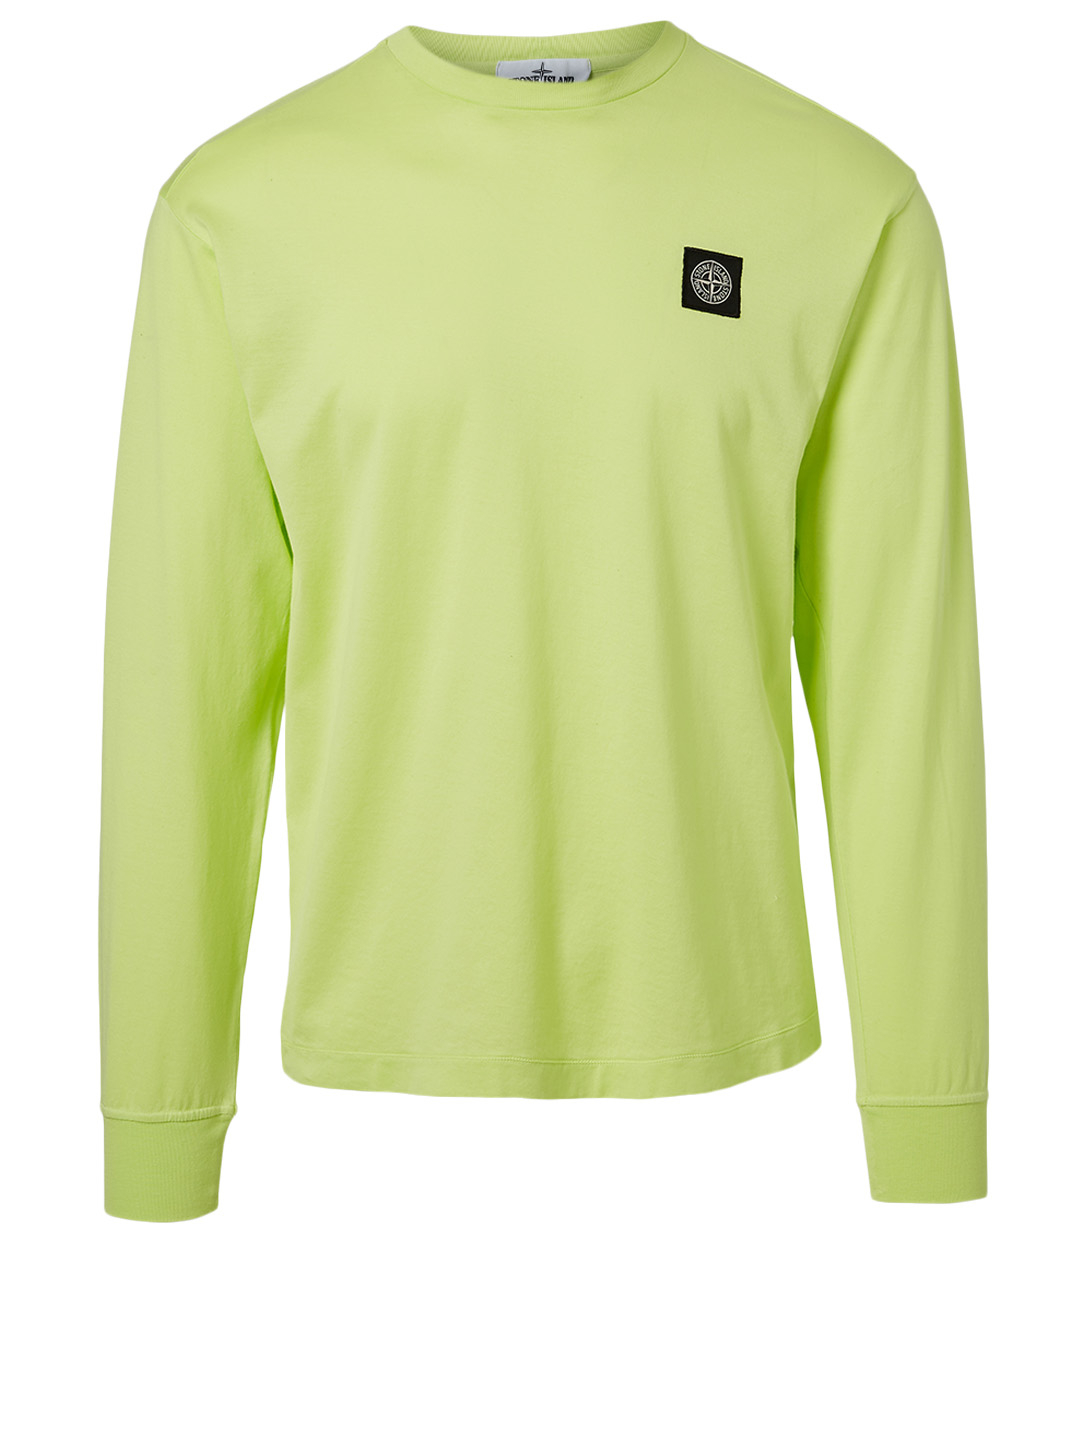 STONE ISLAND Cotton Long-Sleeve T-Shirt Men's Yellow